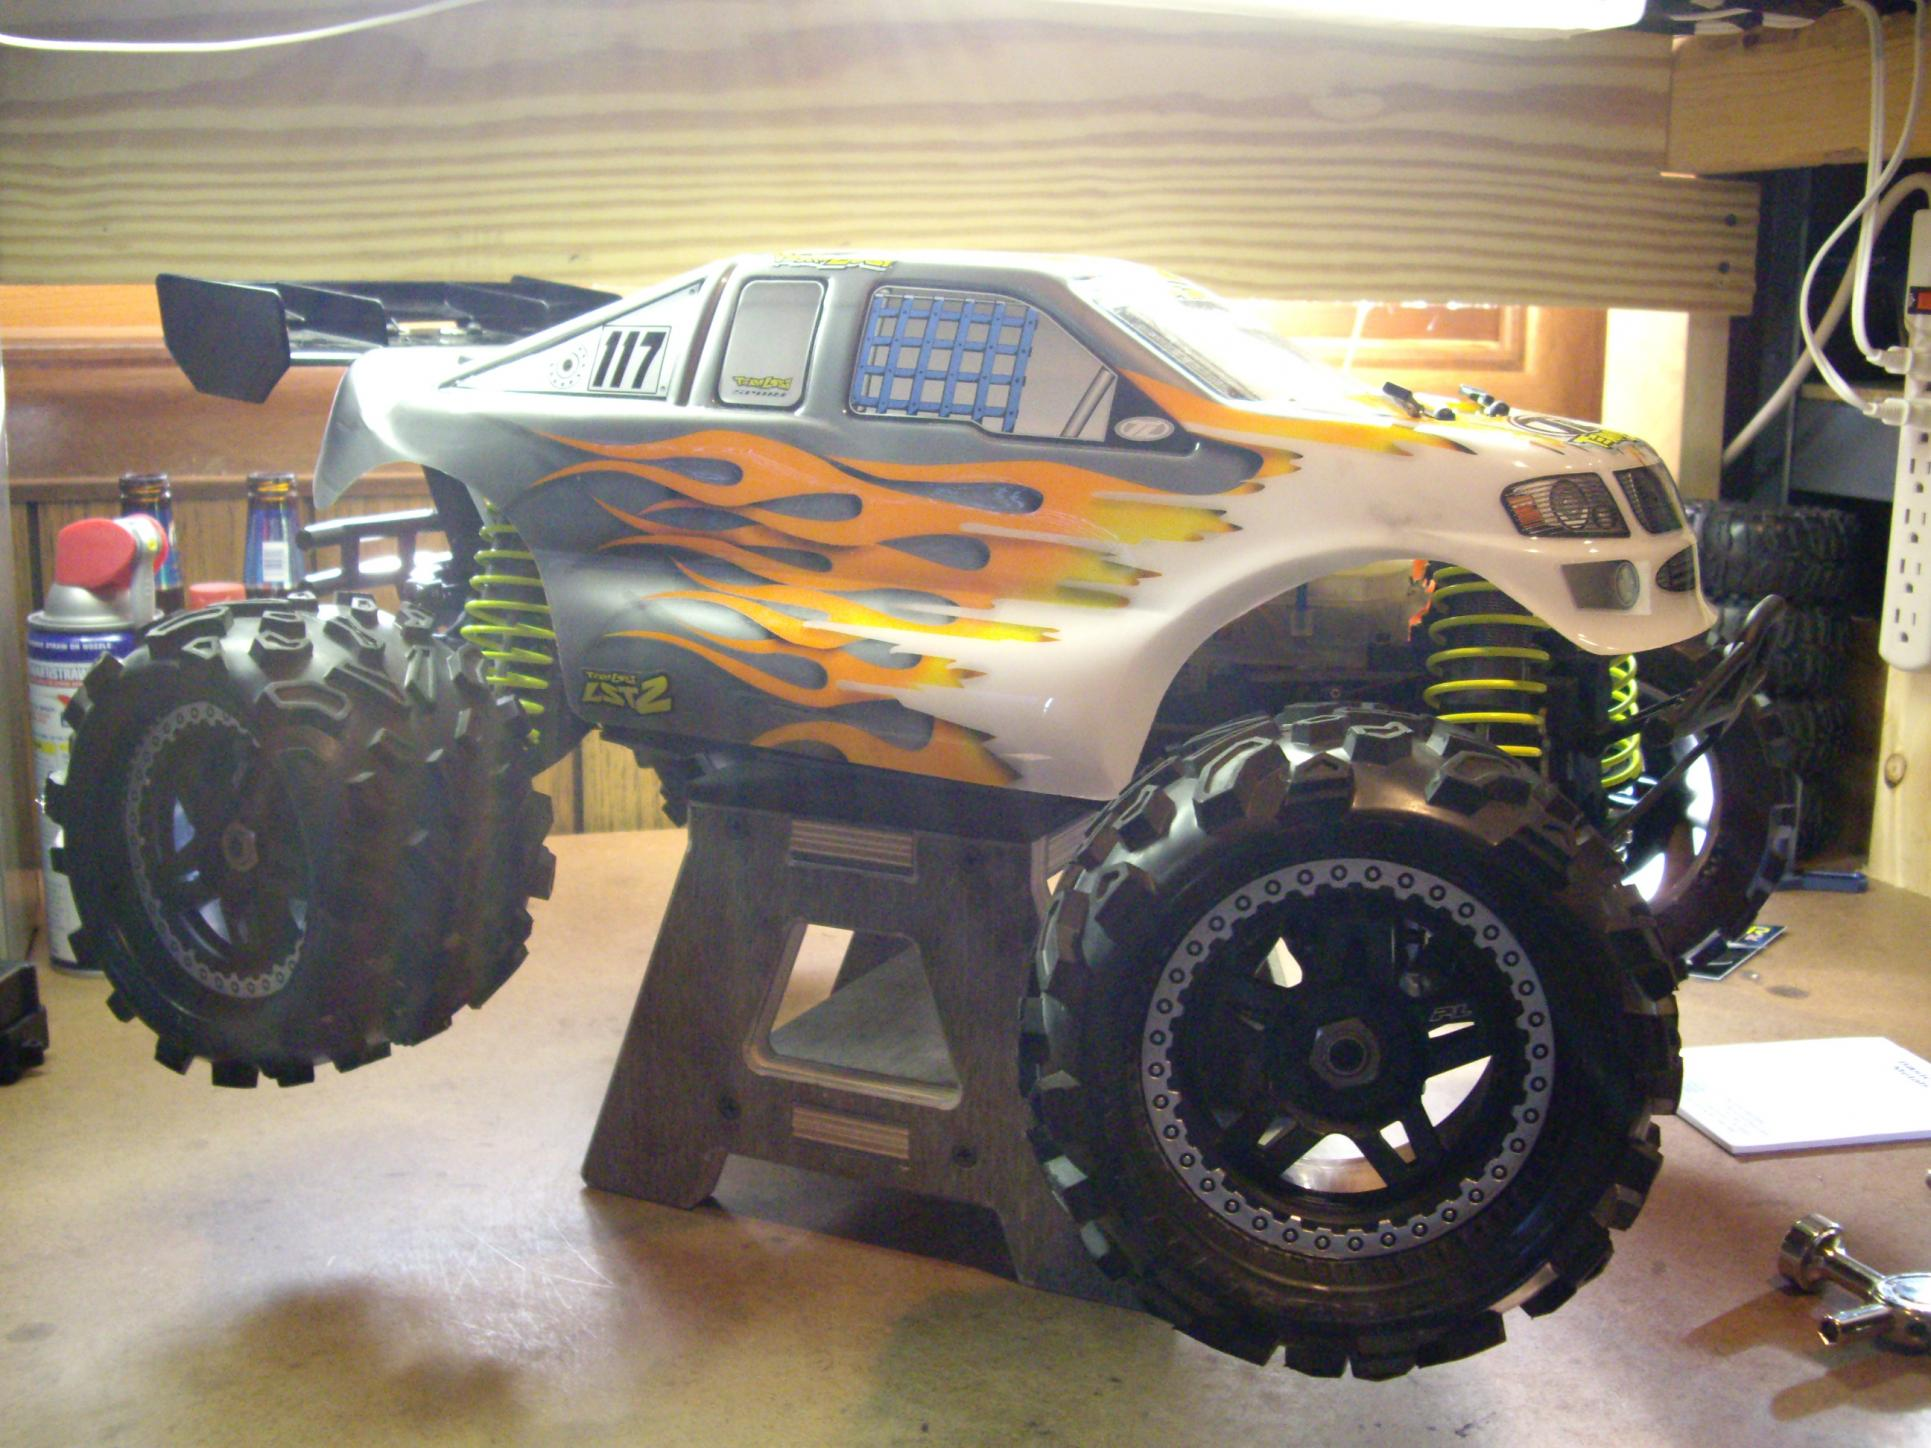 Tire Rack offers BFGoodrich g-Force, Rival, COMP-2 and Radial T/A performance tires, Advantage T/A touring tires, as well as All-Terrain T/A and Mud-Terrain T/A light truck tires, along with several other tire lines used as Original Equipment on new vehicles.